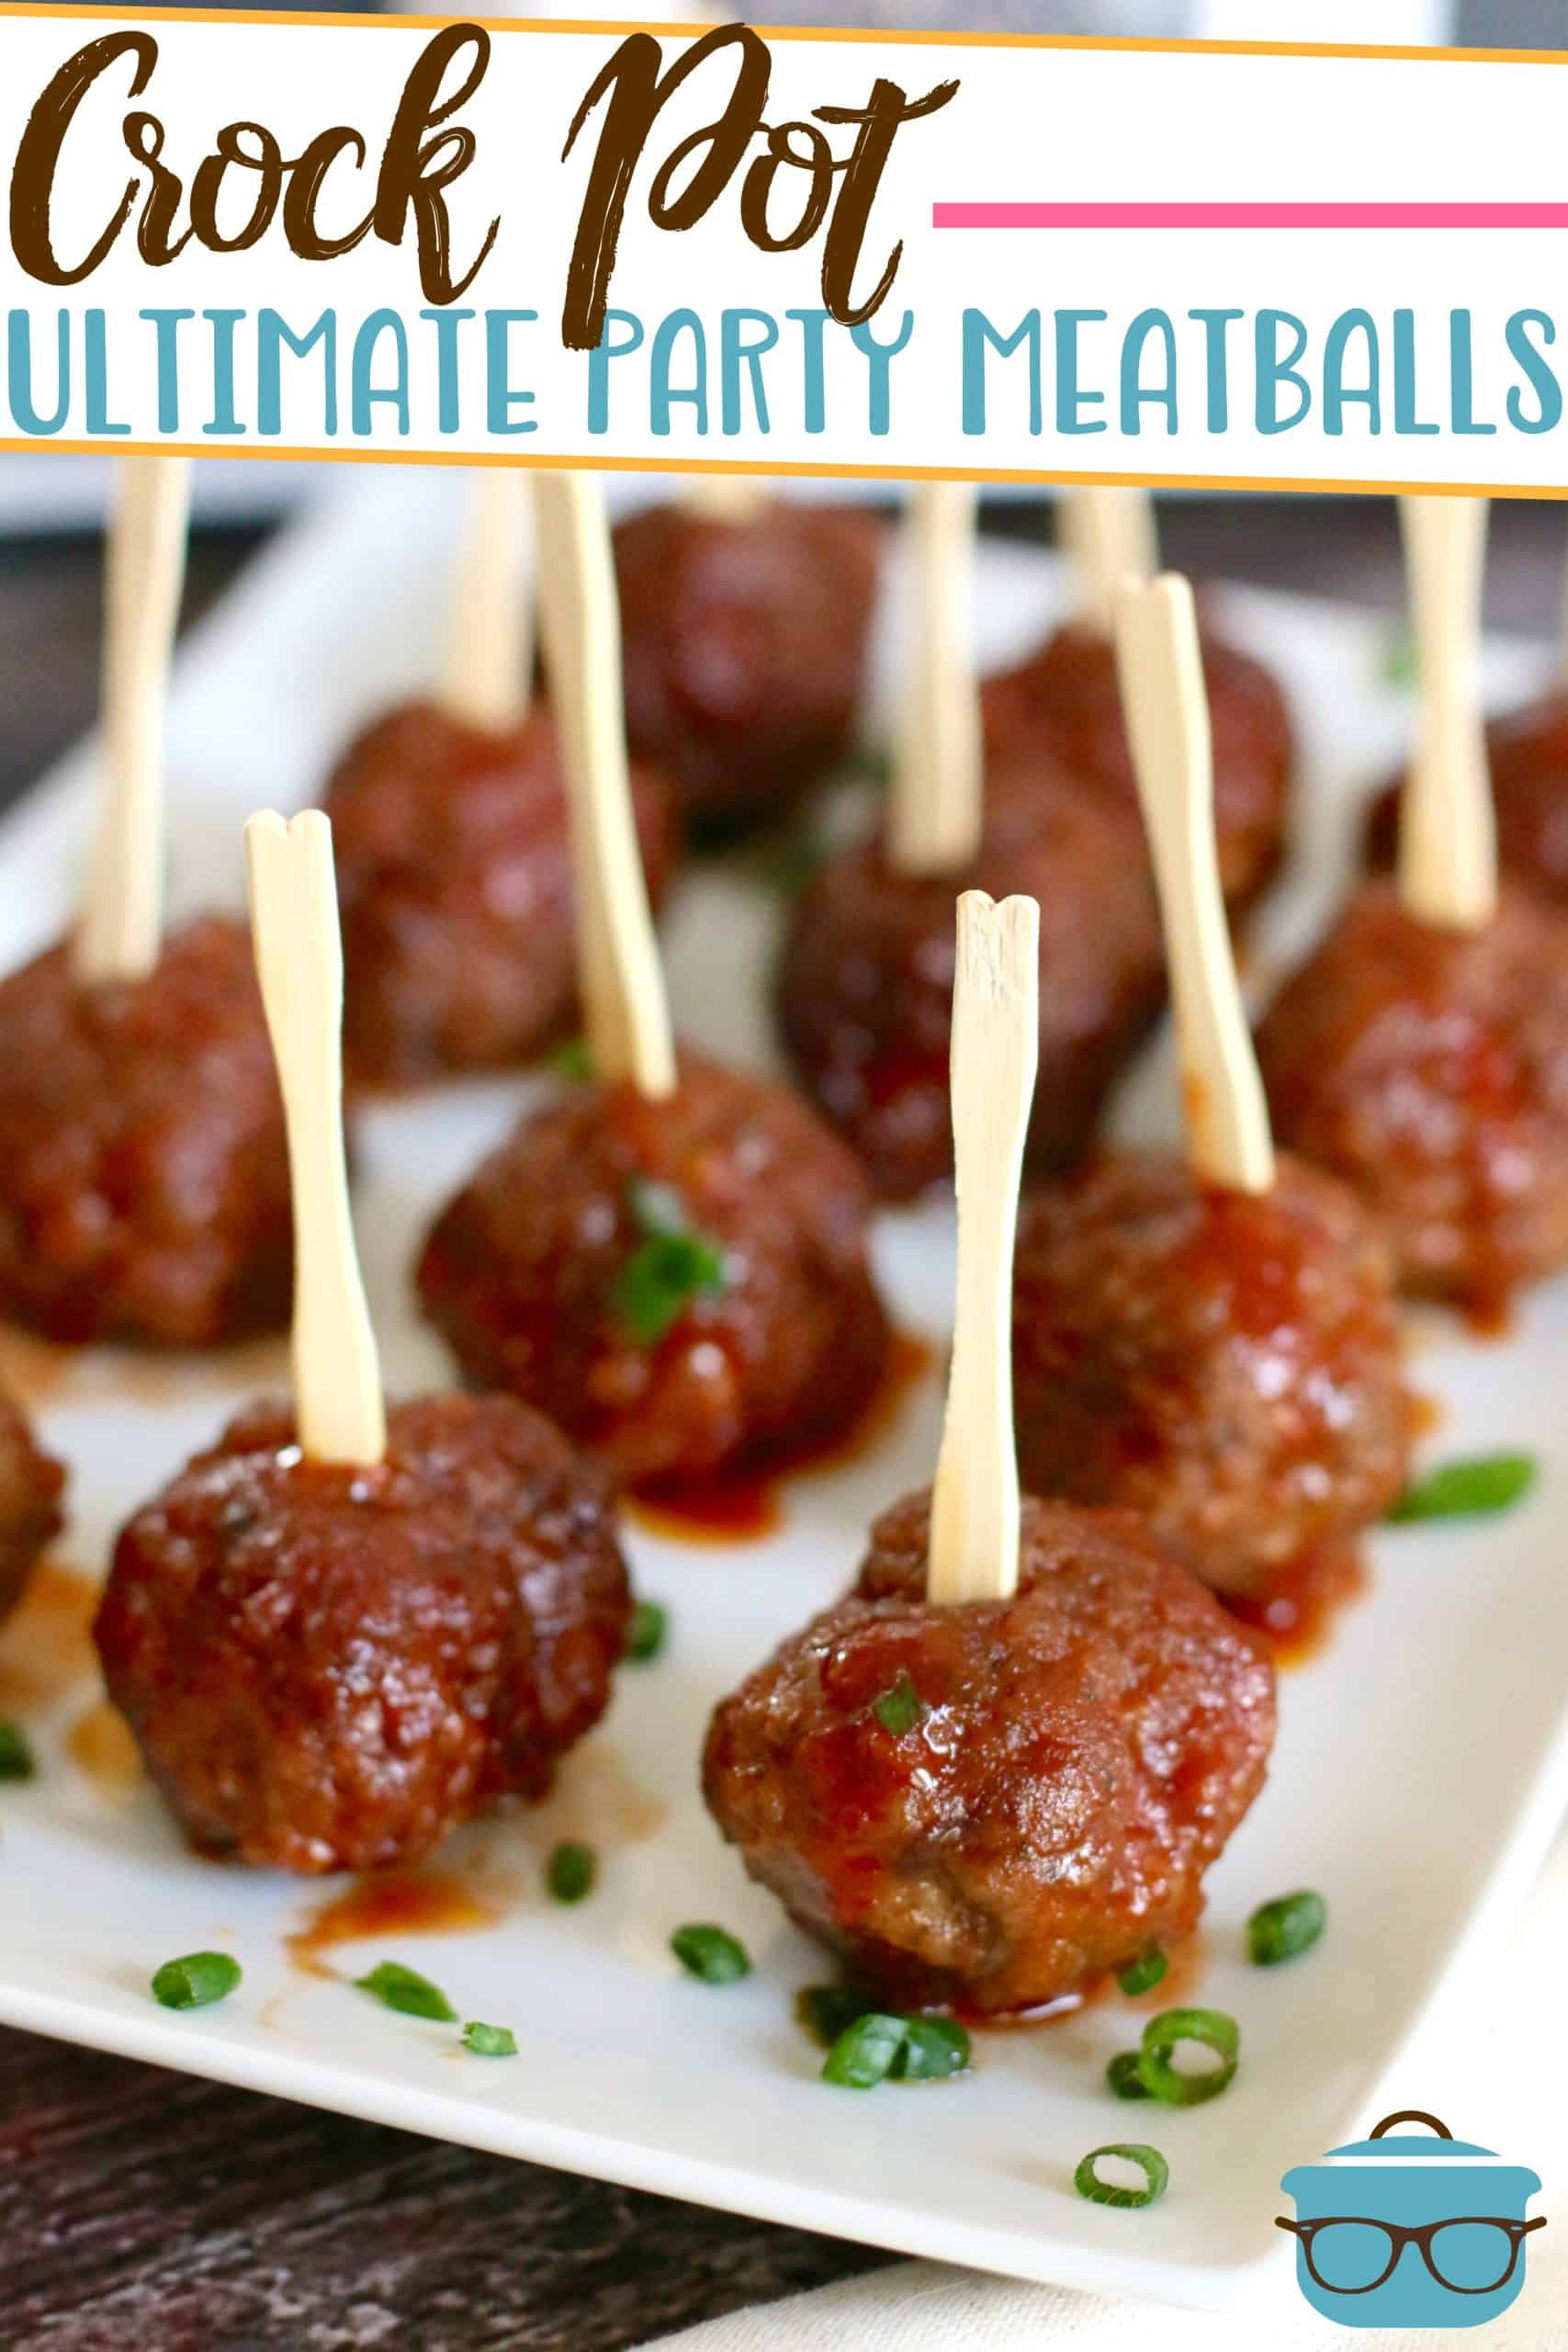 Homemade Crock Pot Ultimate Party Meatballs are easily made from scratch with the most delicious sauce and is made right in your slow cooker!